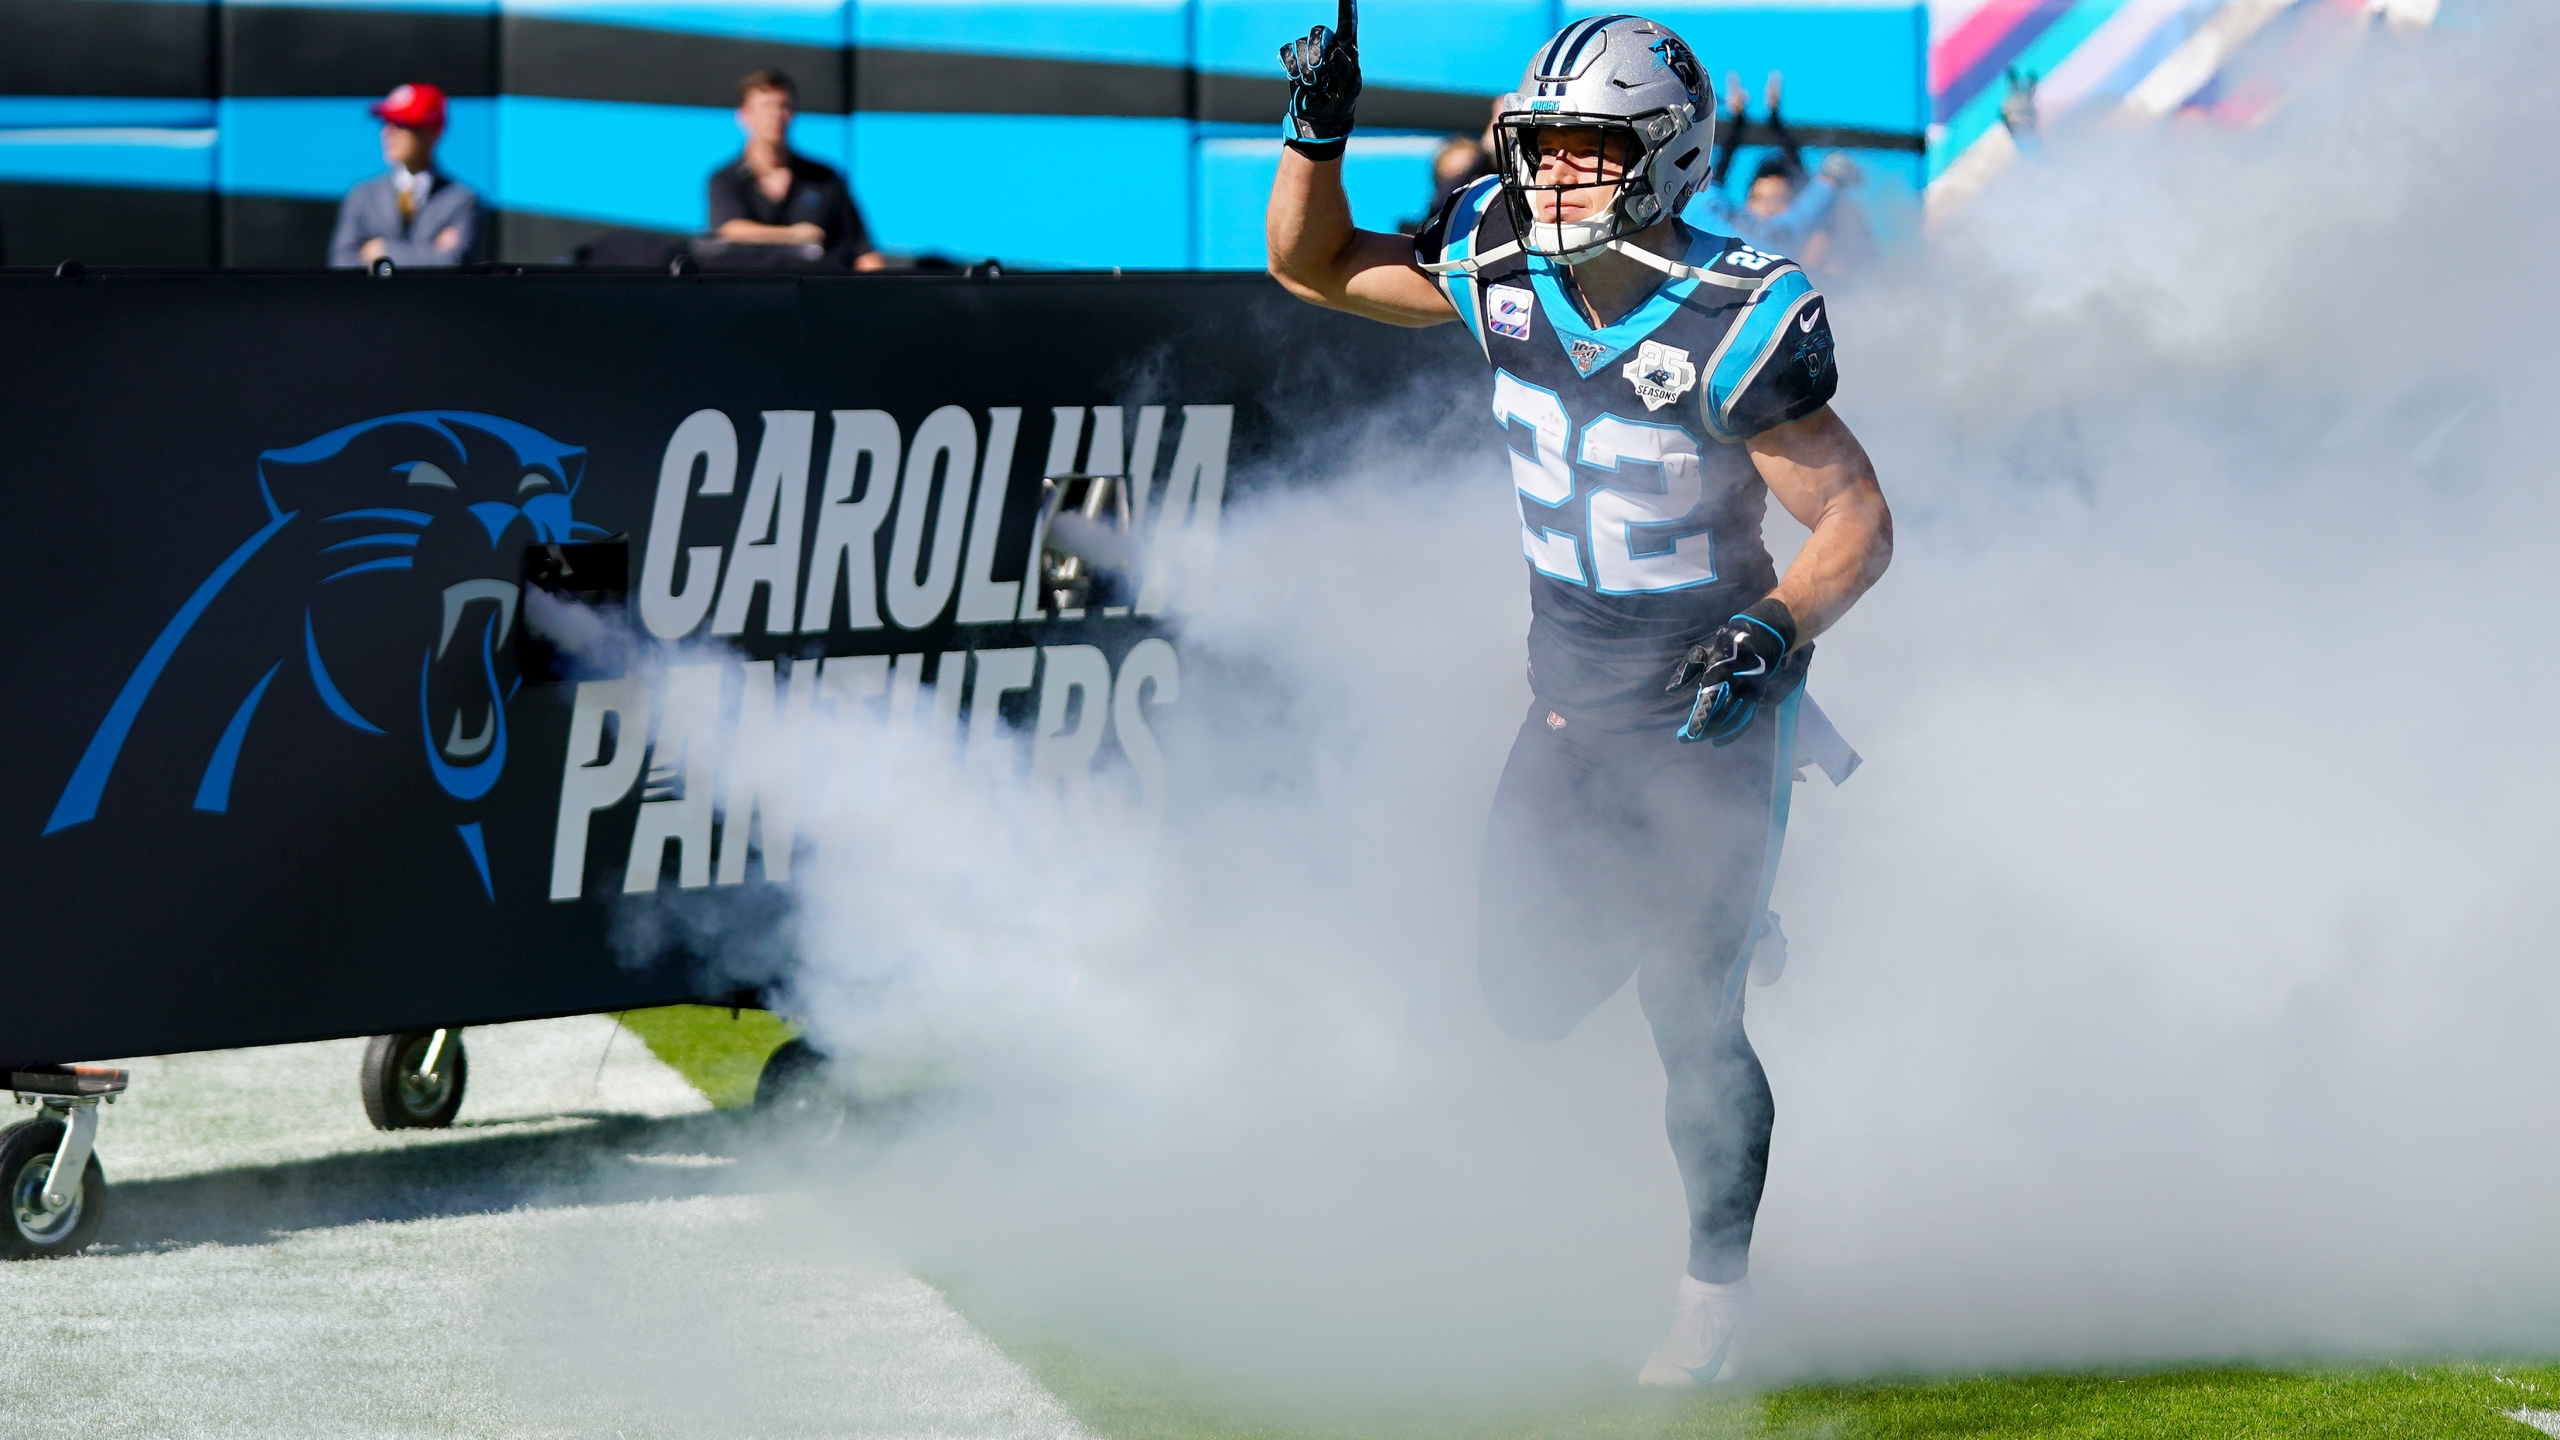 CHARLOTTE, NORTH CAROLINA - NOVEMBER 03: Christian McCaffrey #22 of the Carolina Panthers before their game against the Tennessee Titans at Bank of America Stadium on November 03, 2019 in Charlotte, North Carolina.